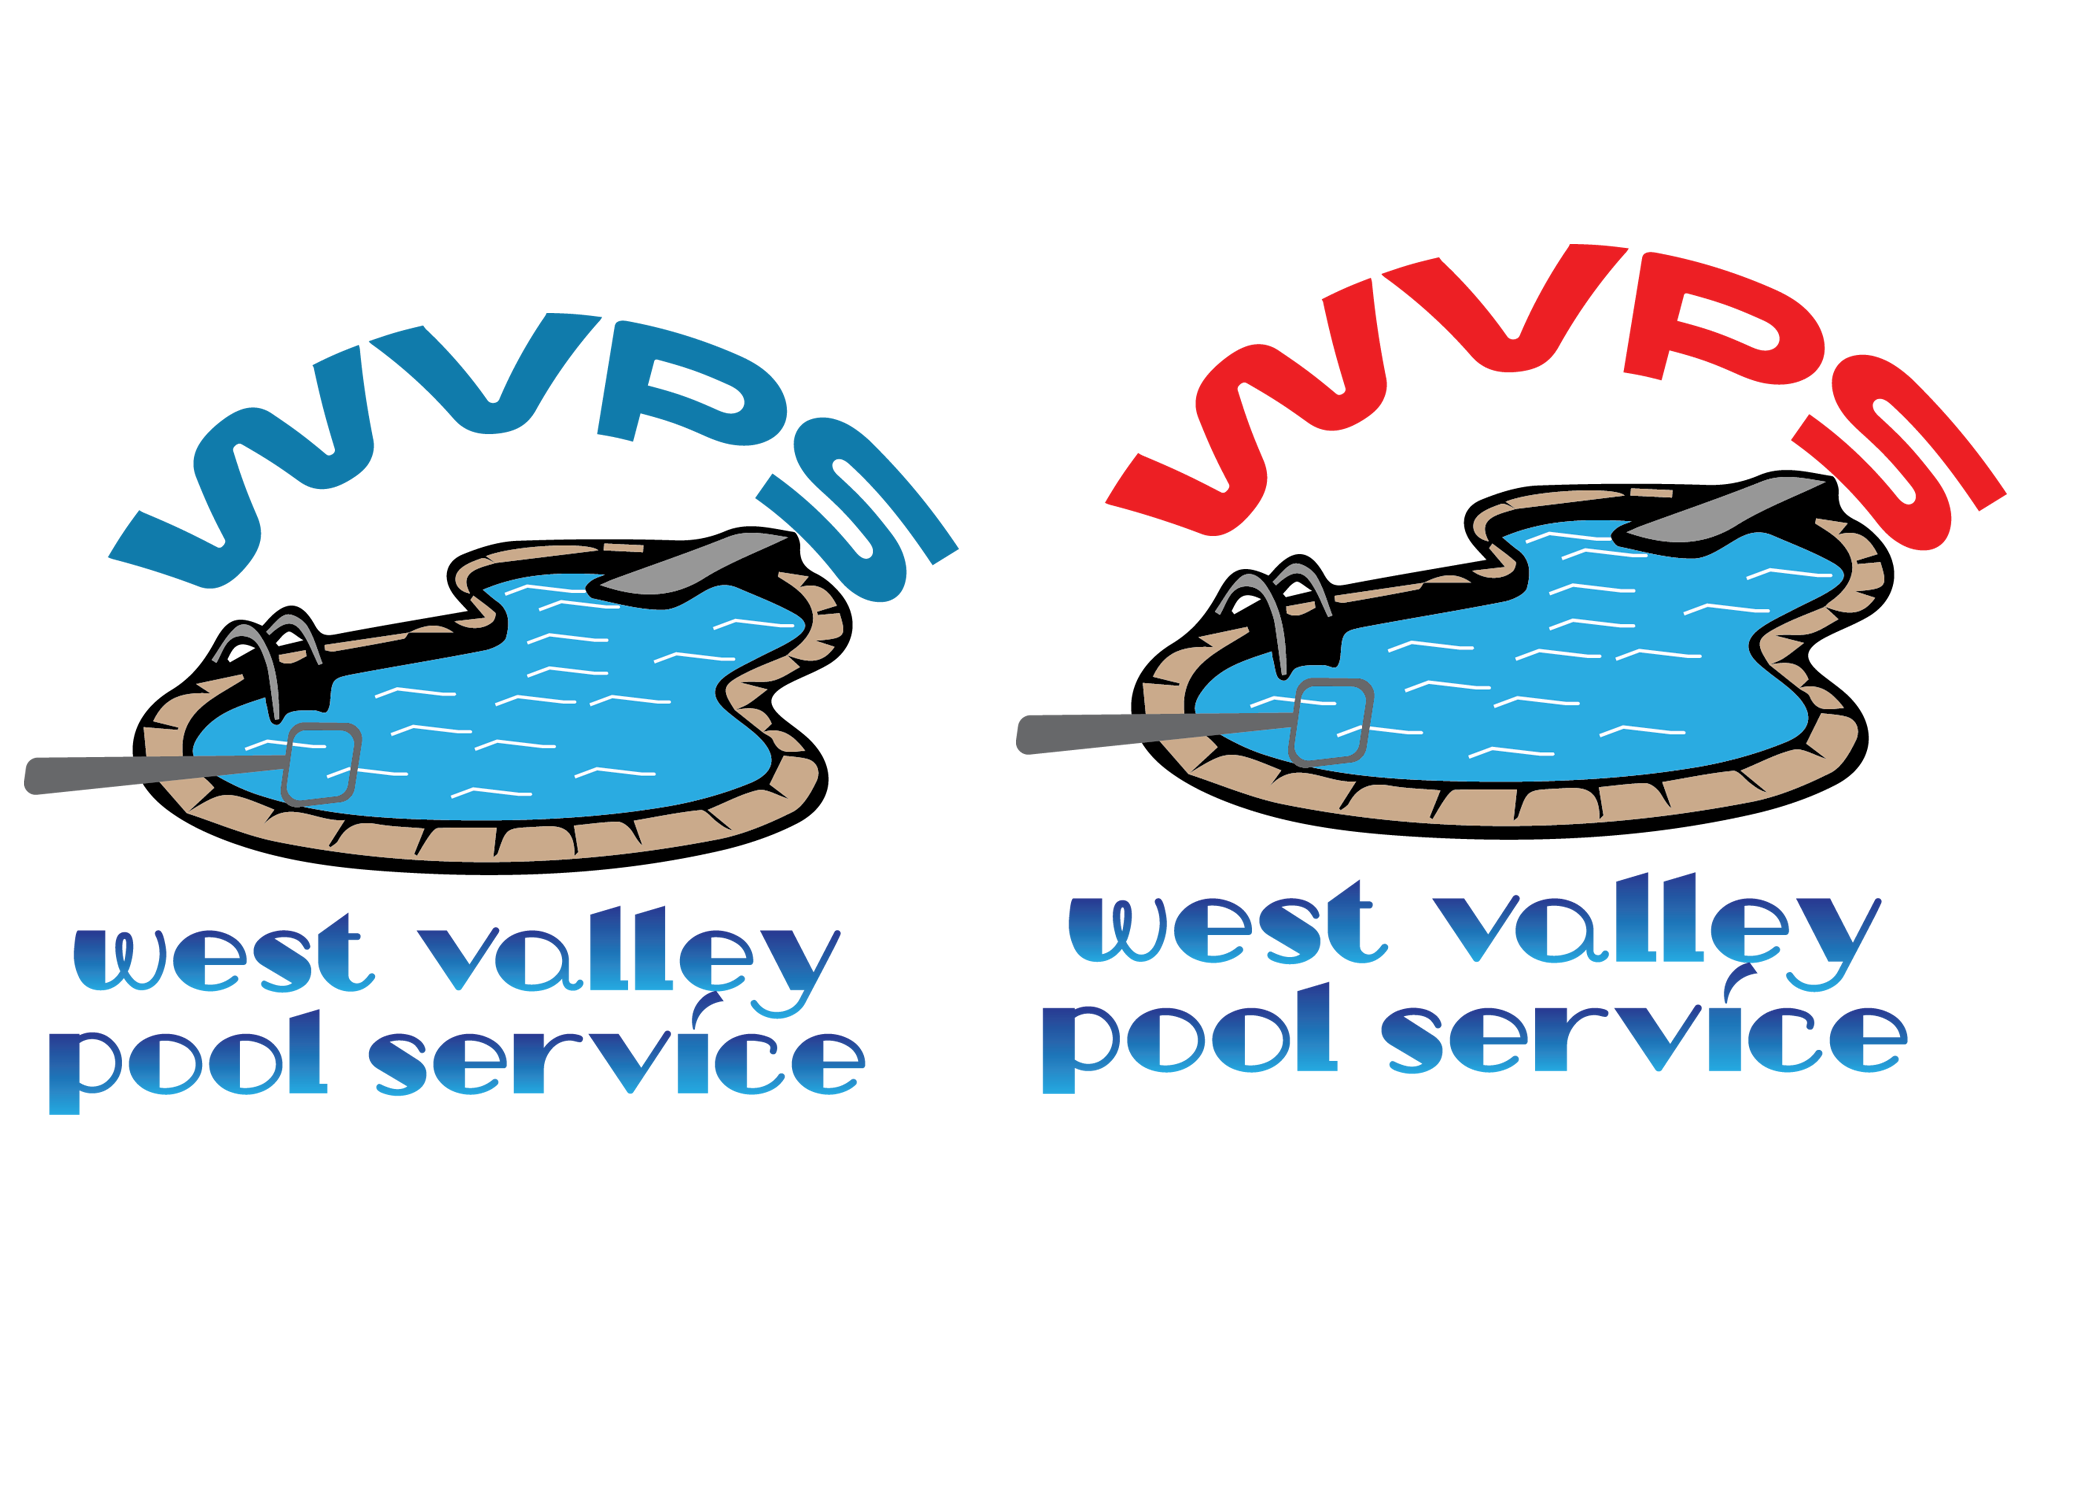 Logo Design by Umair ahmed Iqbal - Entry No. 82 in the Logo Design Contest Clever Logo Design for West Valley Pool Service.